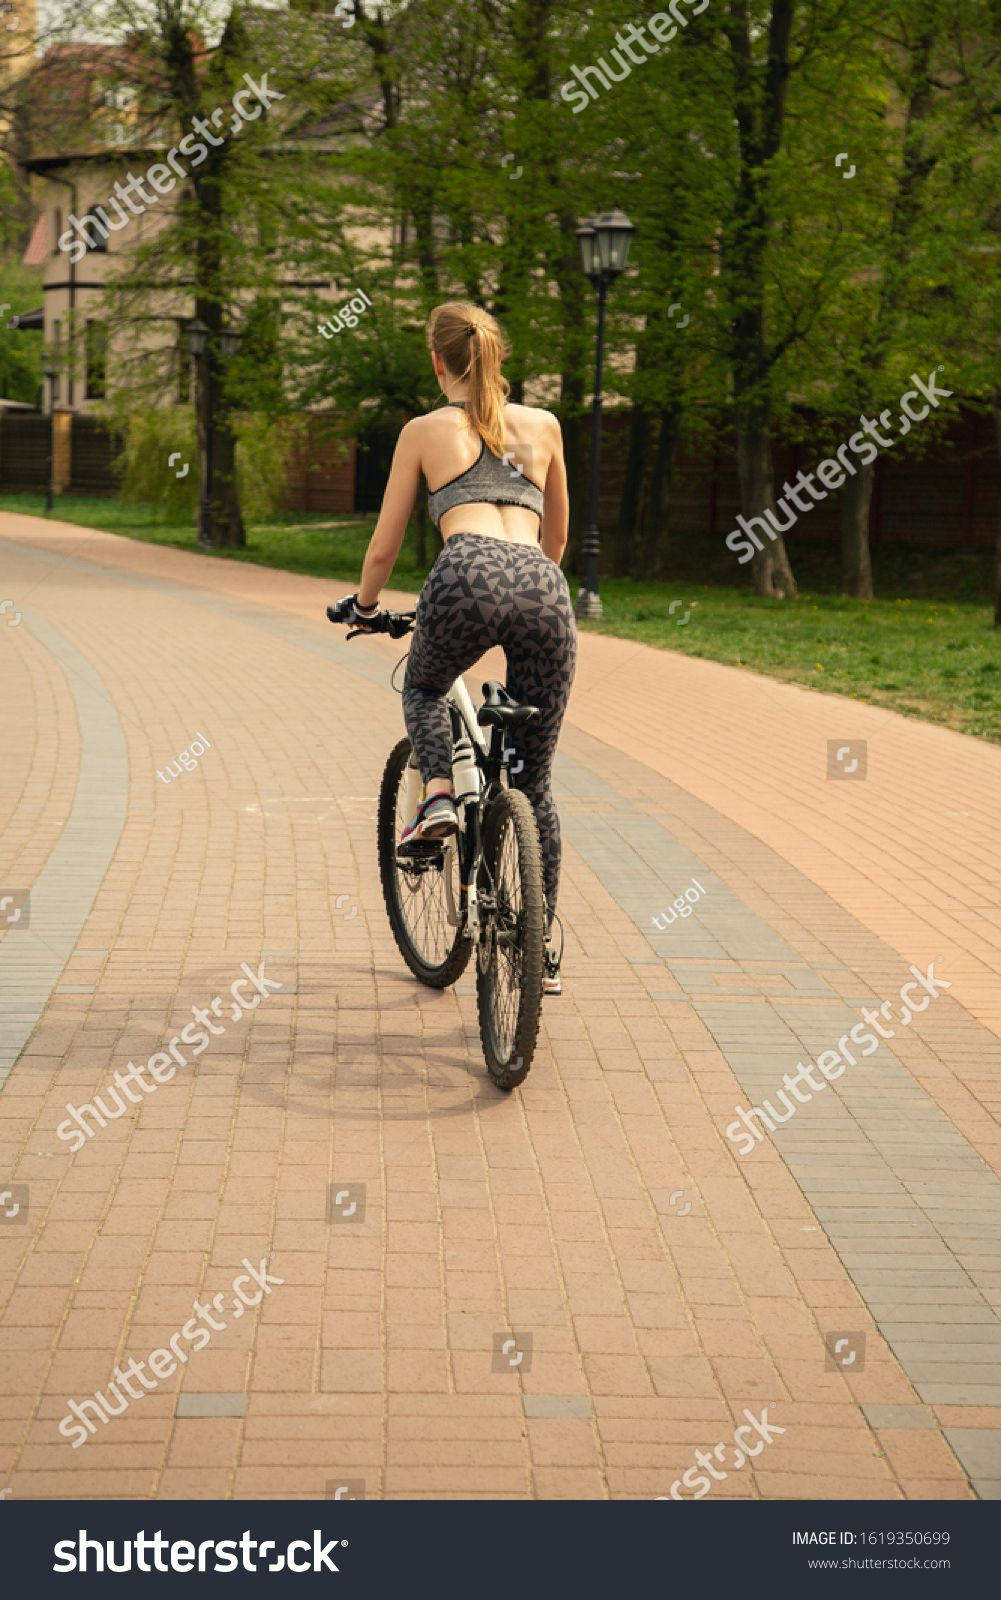 sports slim young blond woman move on bike in park Ad ,